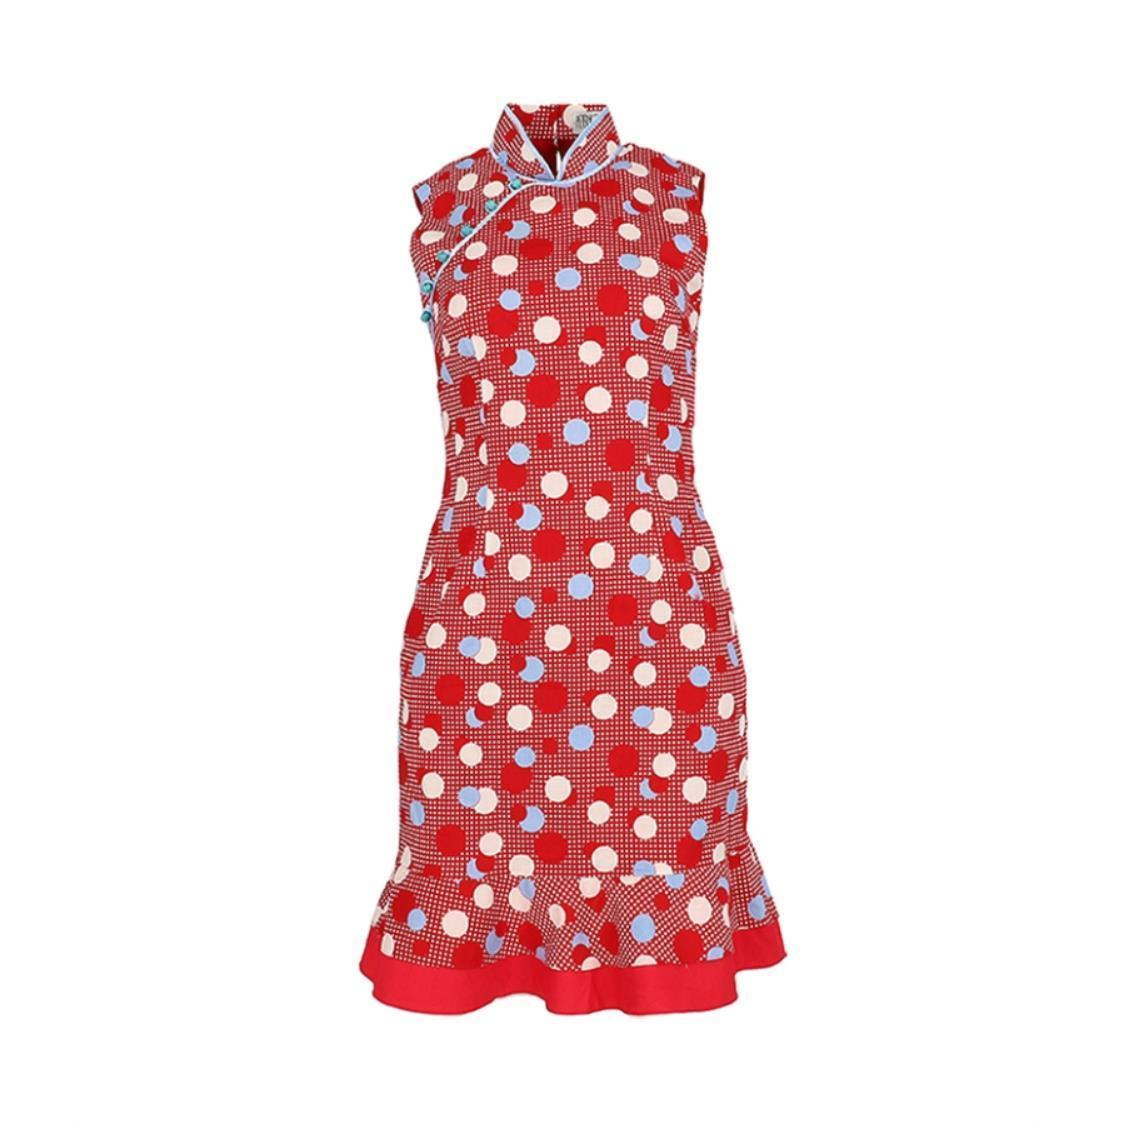 Japanese Cotton Tri-color Polka Dot Cheongsam with Turquoise Bottoms  Red Flounce Hem